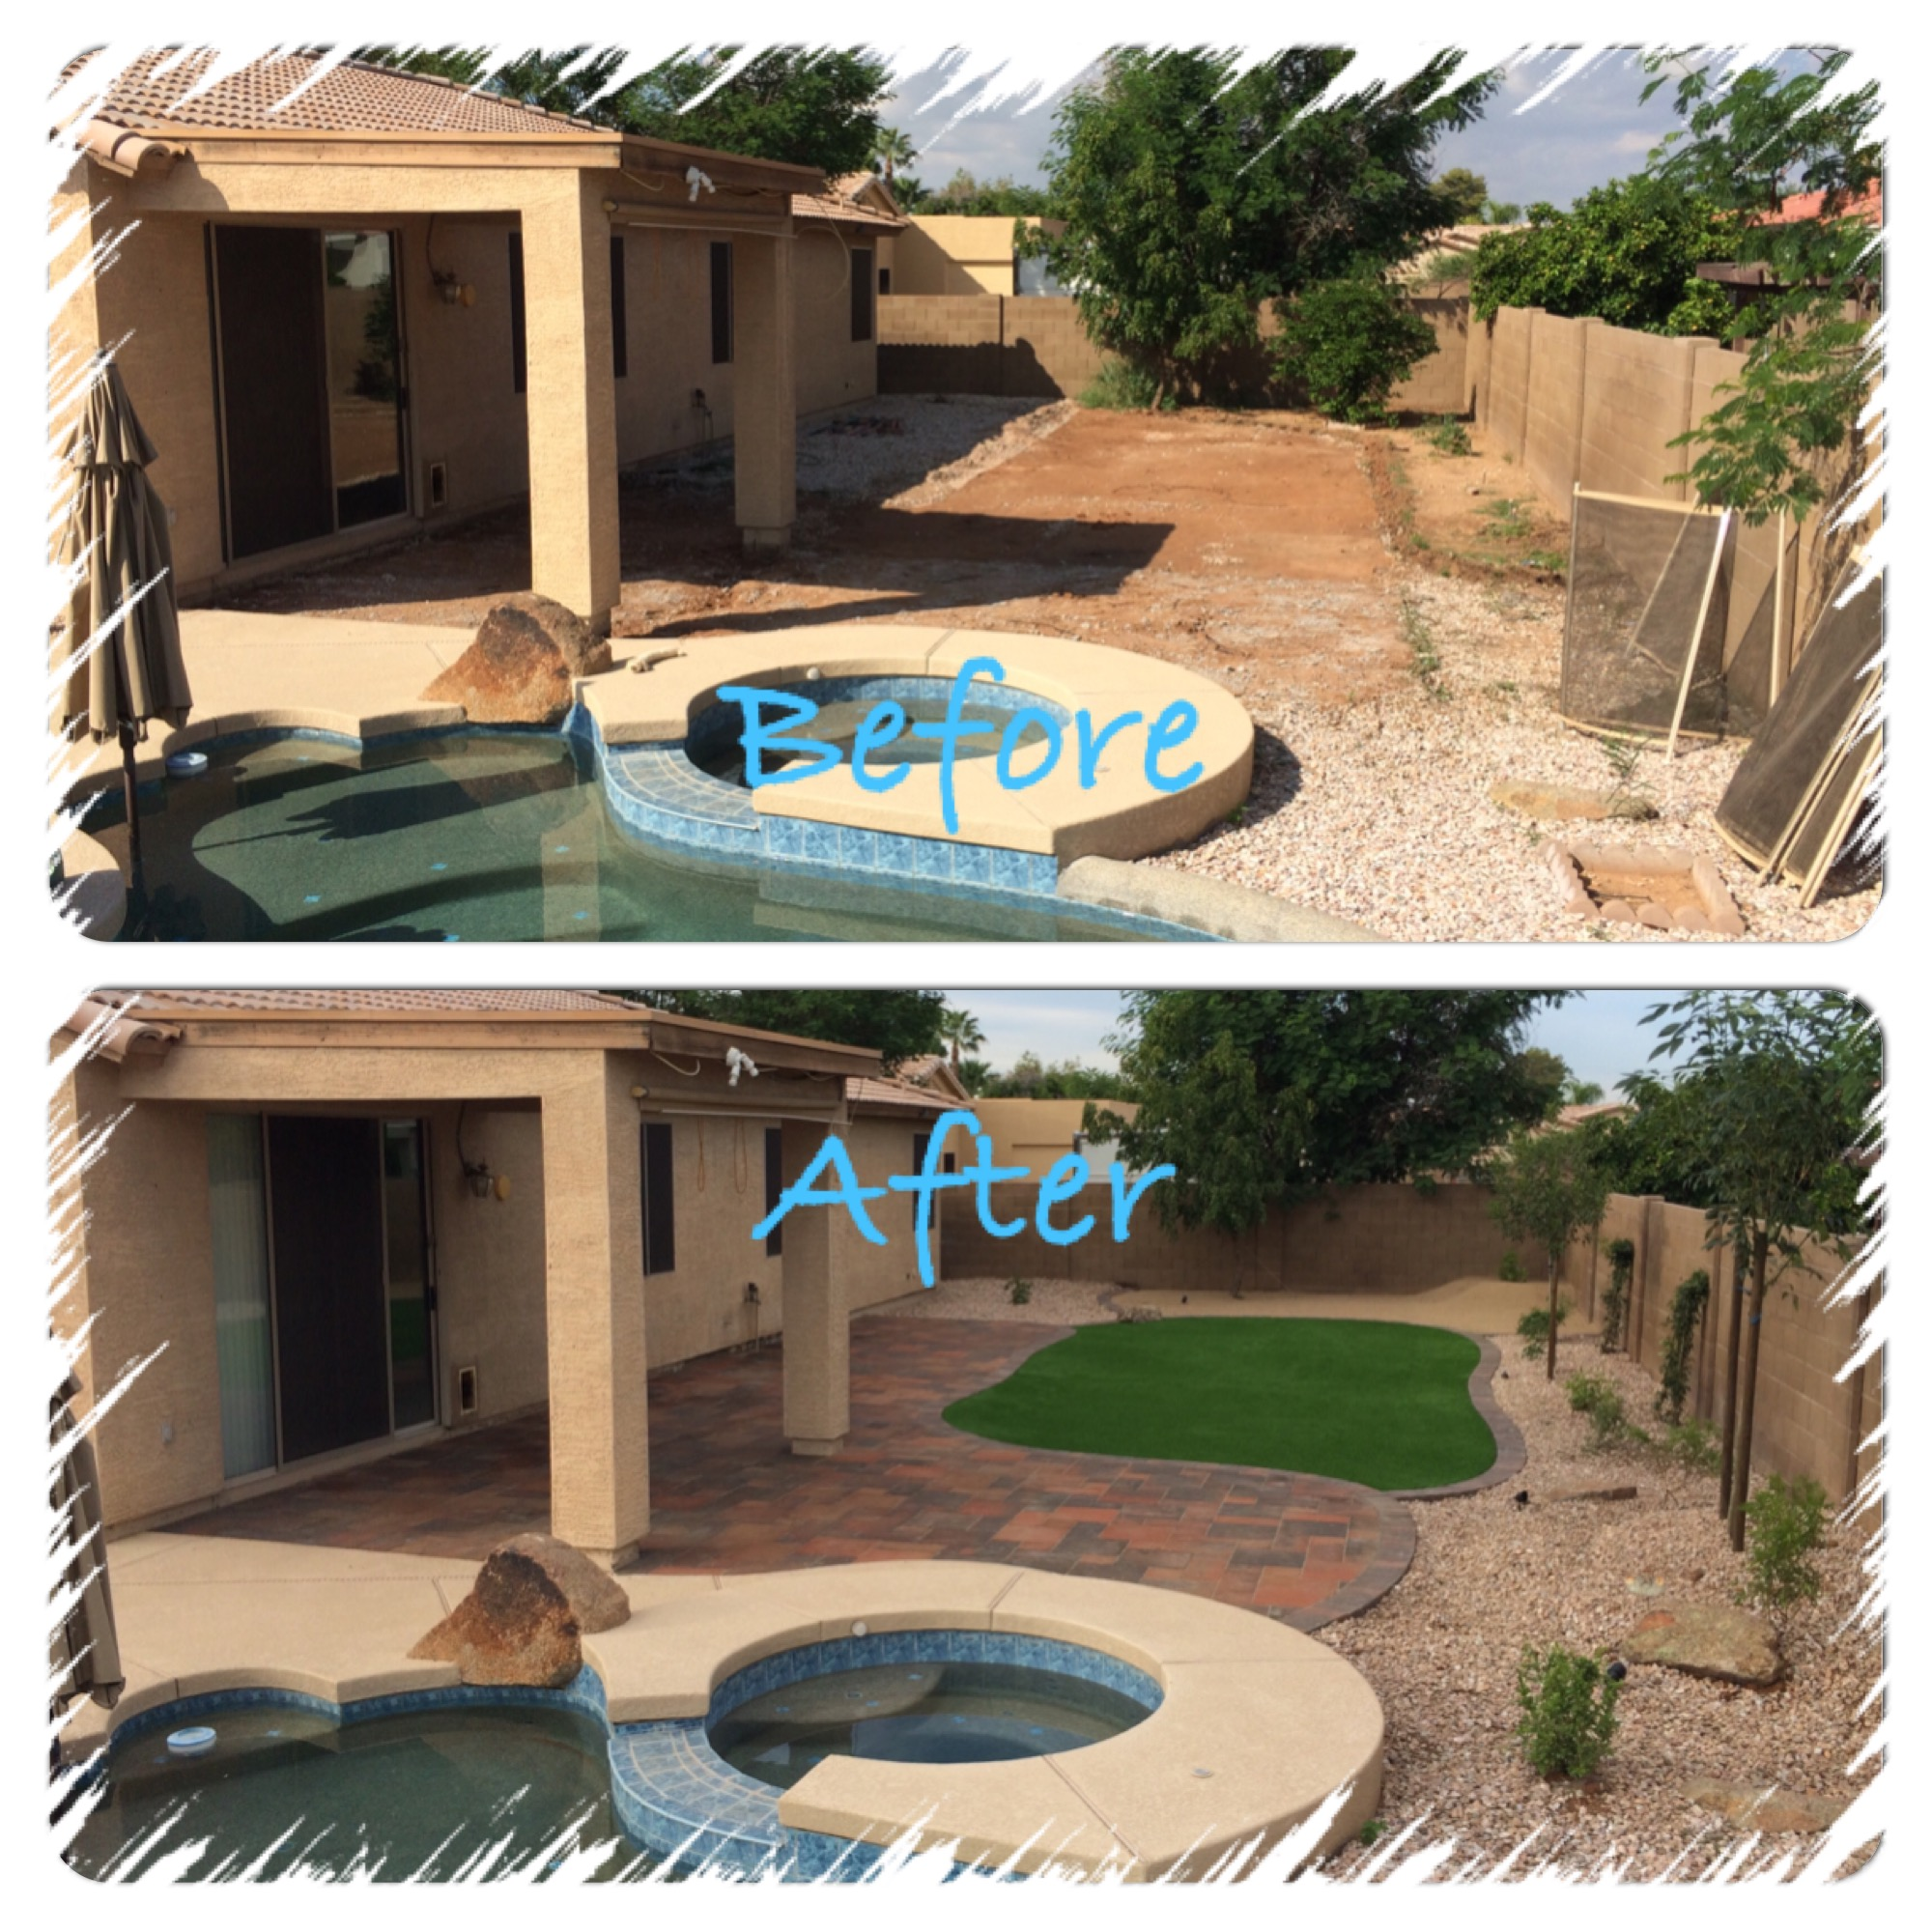 Landscape design archives arizona living landscape design for Patio landscape design